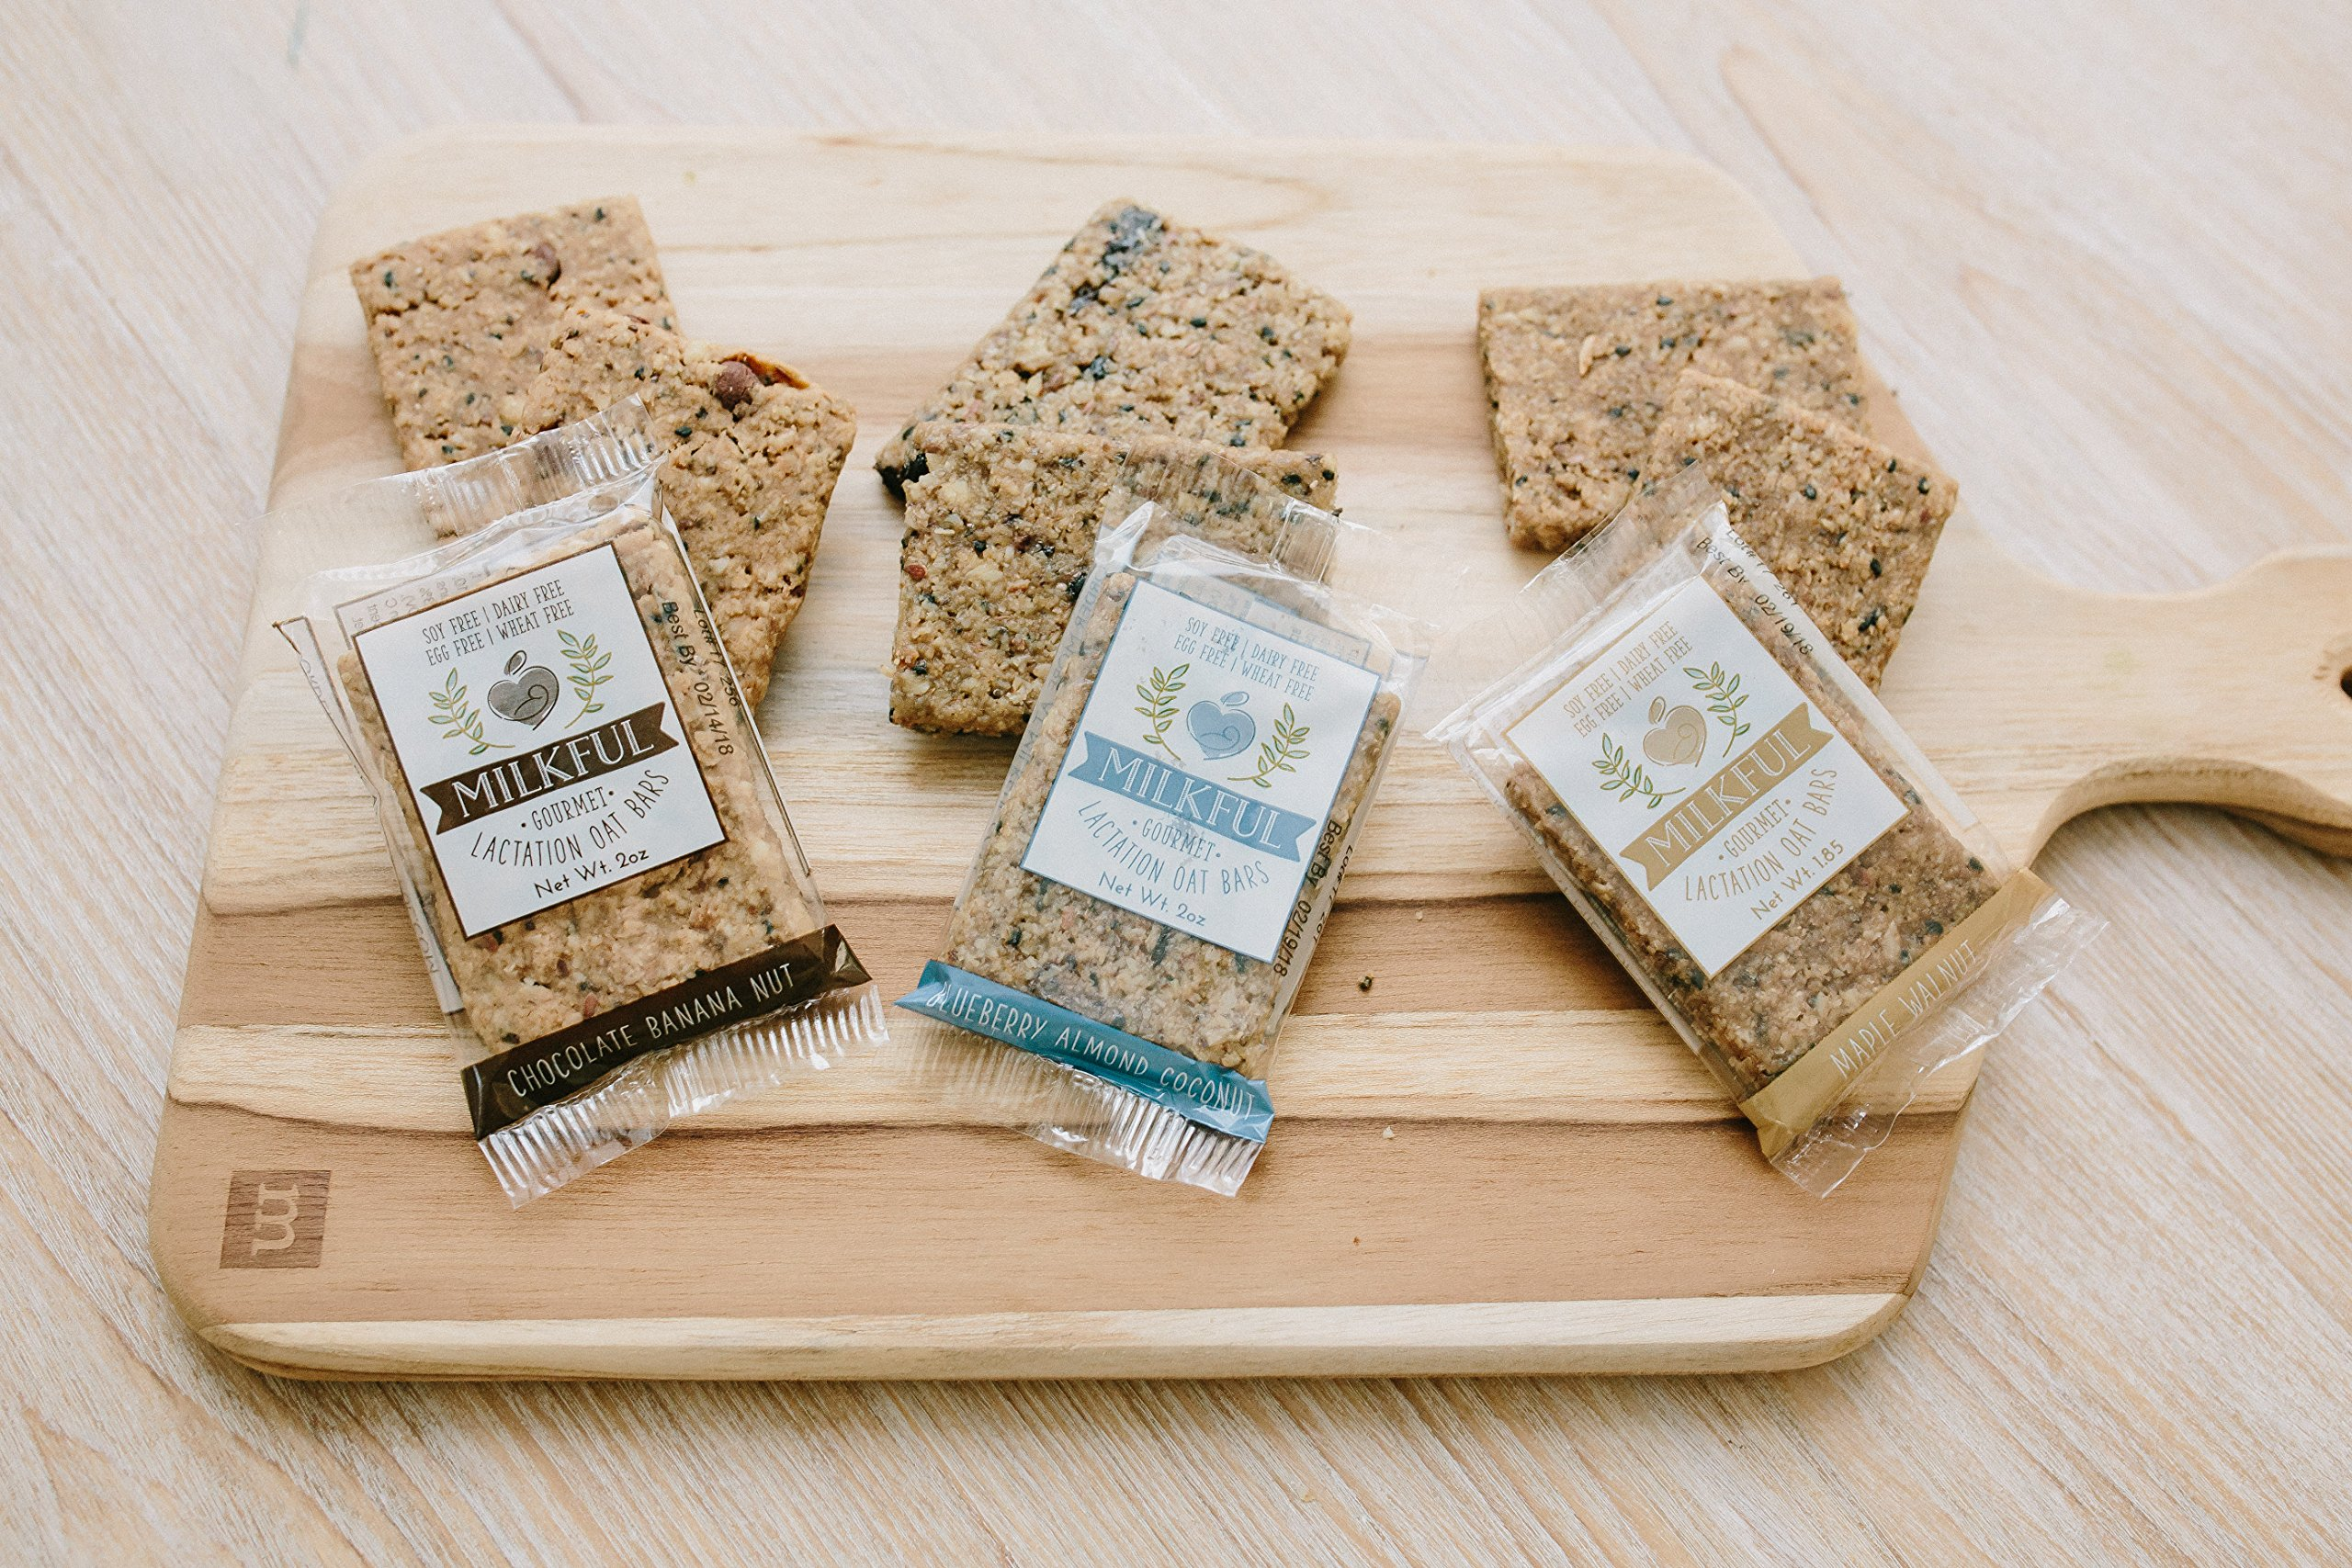 MILKFUL Lactation Bars- Wholesome Alternative to Lactation Cookies for Breastfeeding Moms. Helps Boost Breast Milk Supply.12 Bars. Dairy Free, Egg Free, Soy Free, Wheat Free (Blueberry Almond Coconut) by MILKFUL  (Image #5)